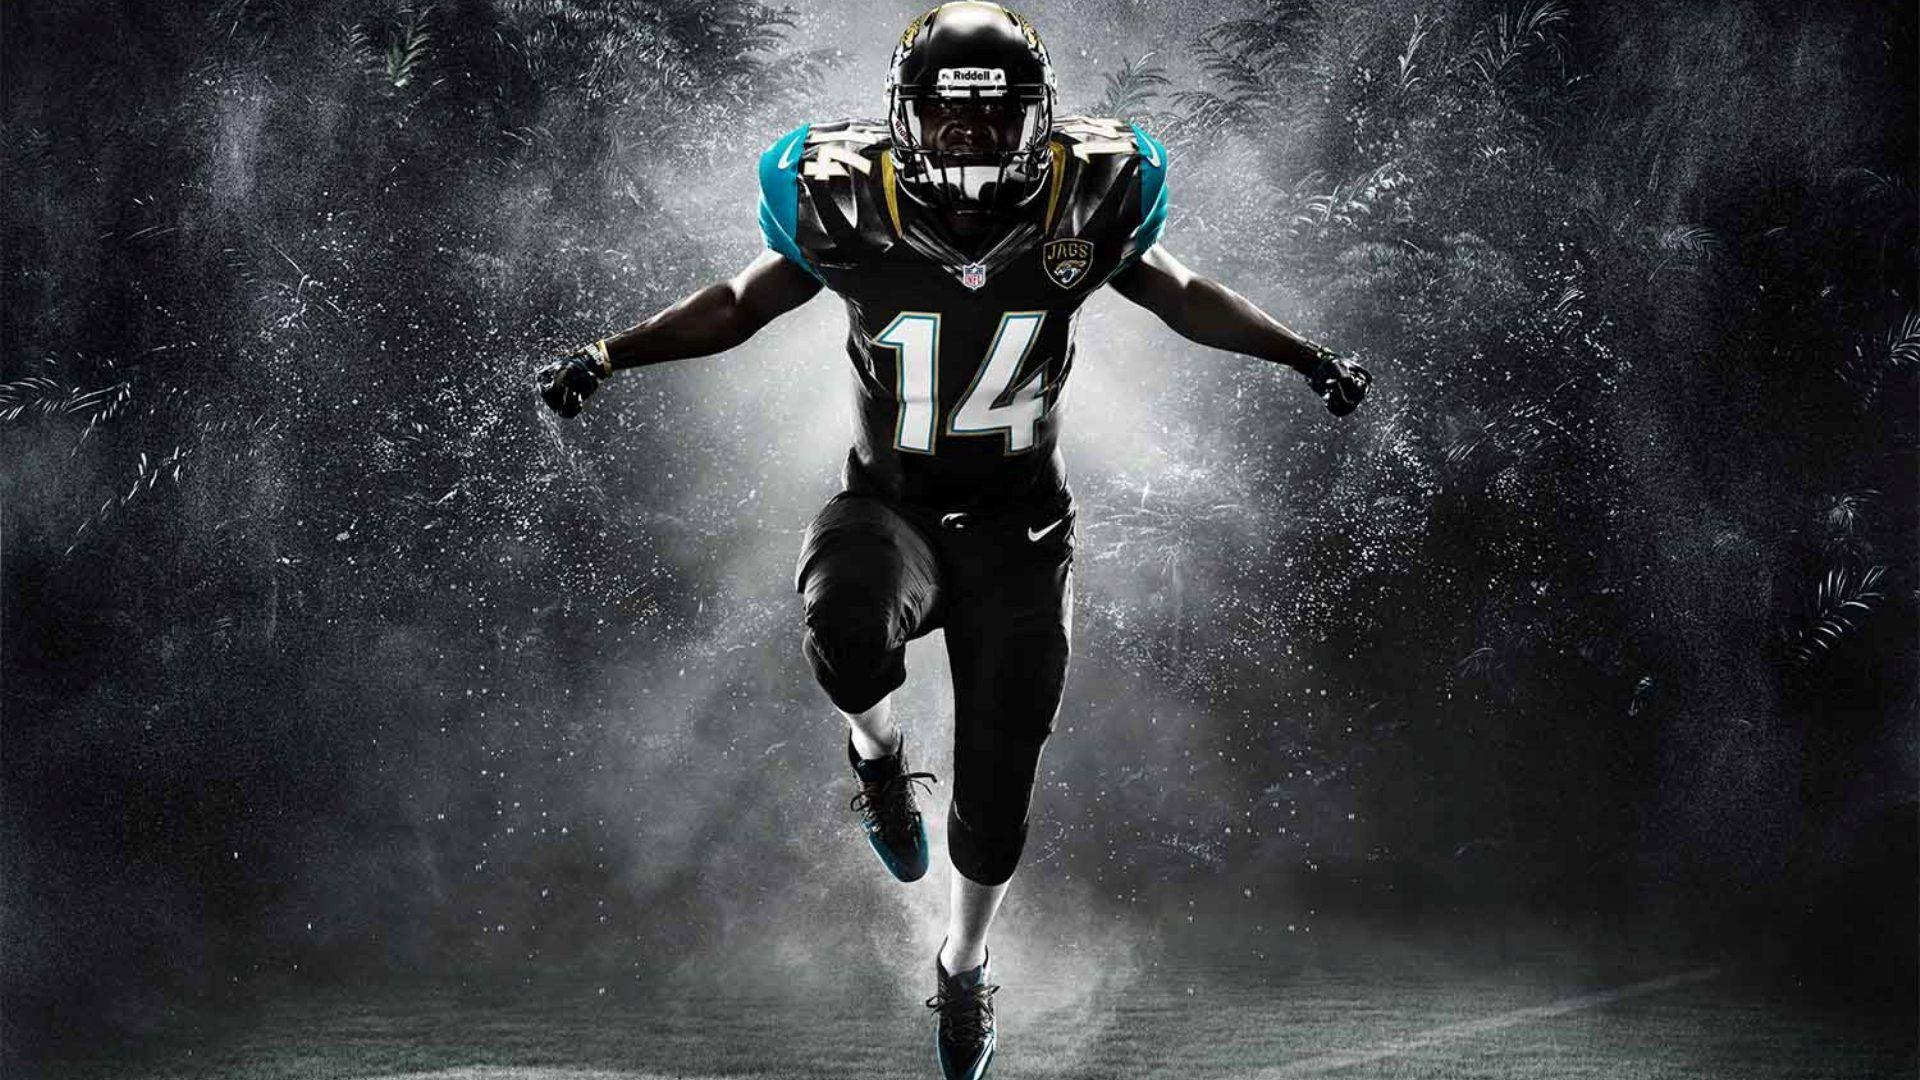 American Football 1080p: Top Free NFL Backgrounds